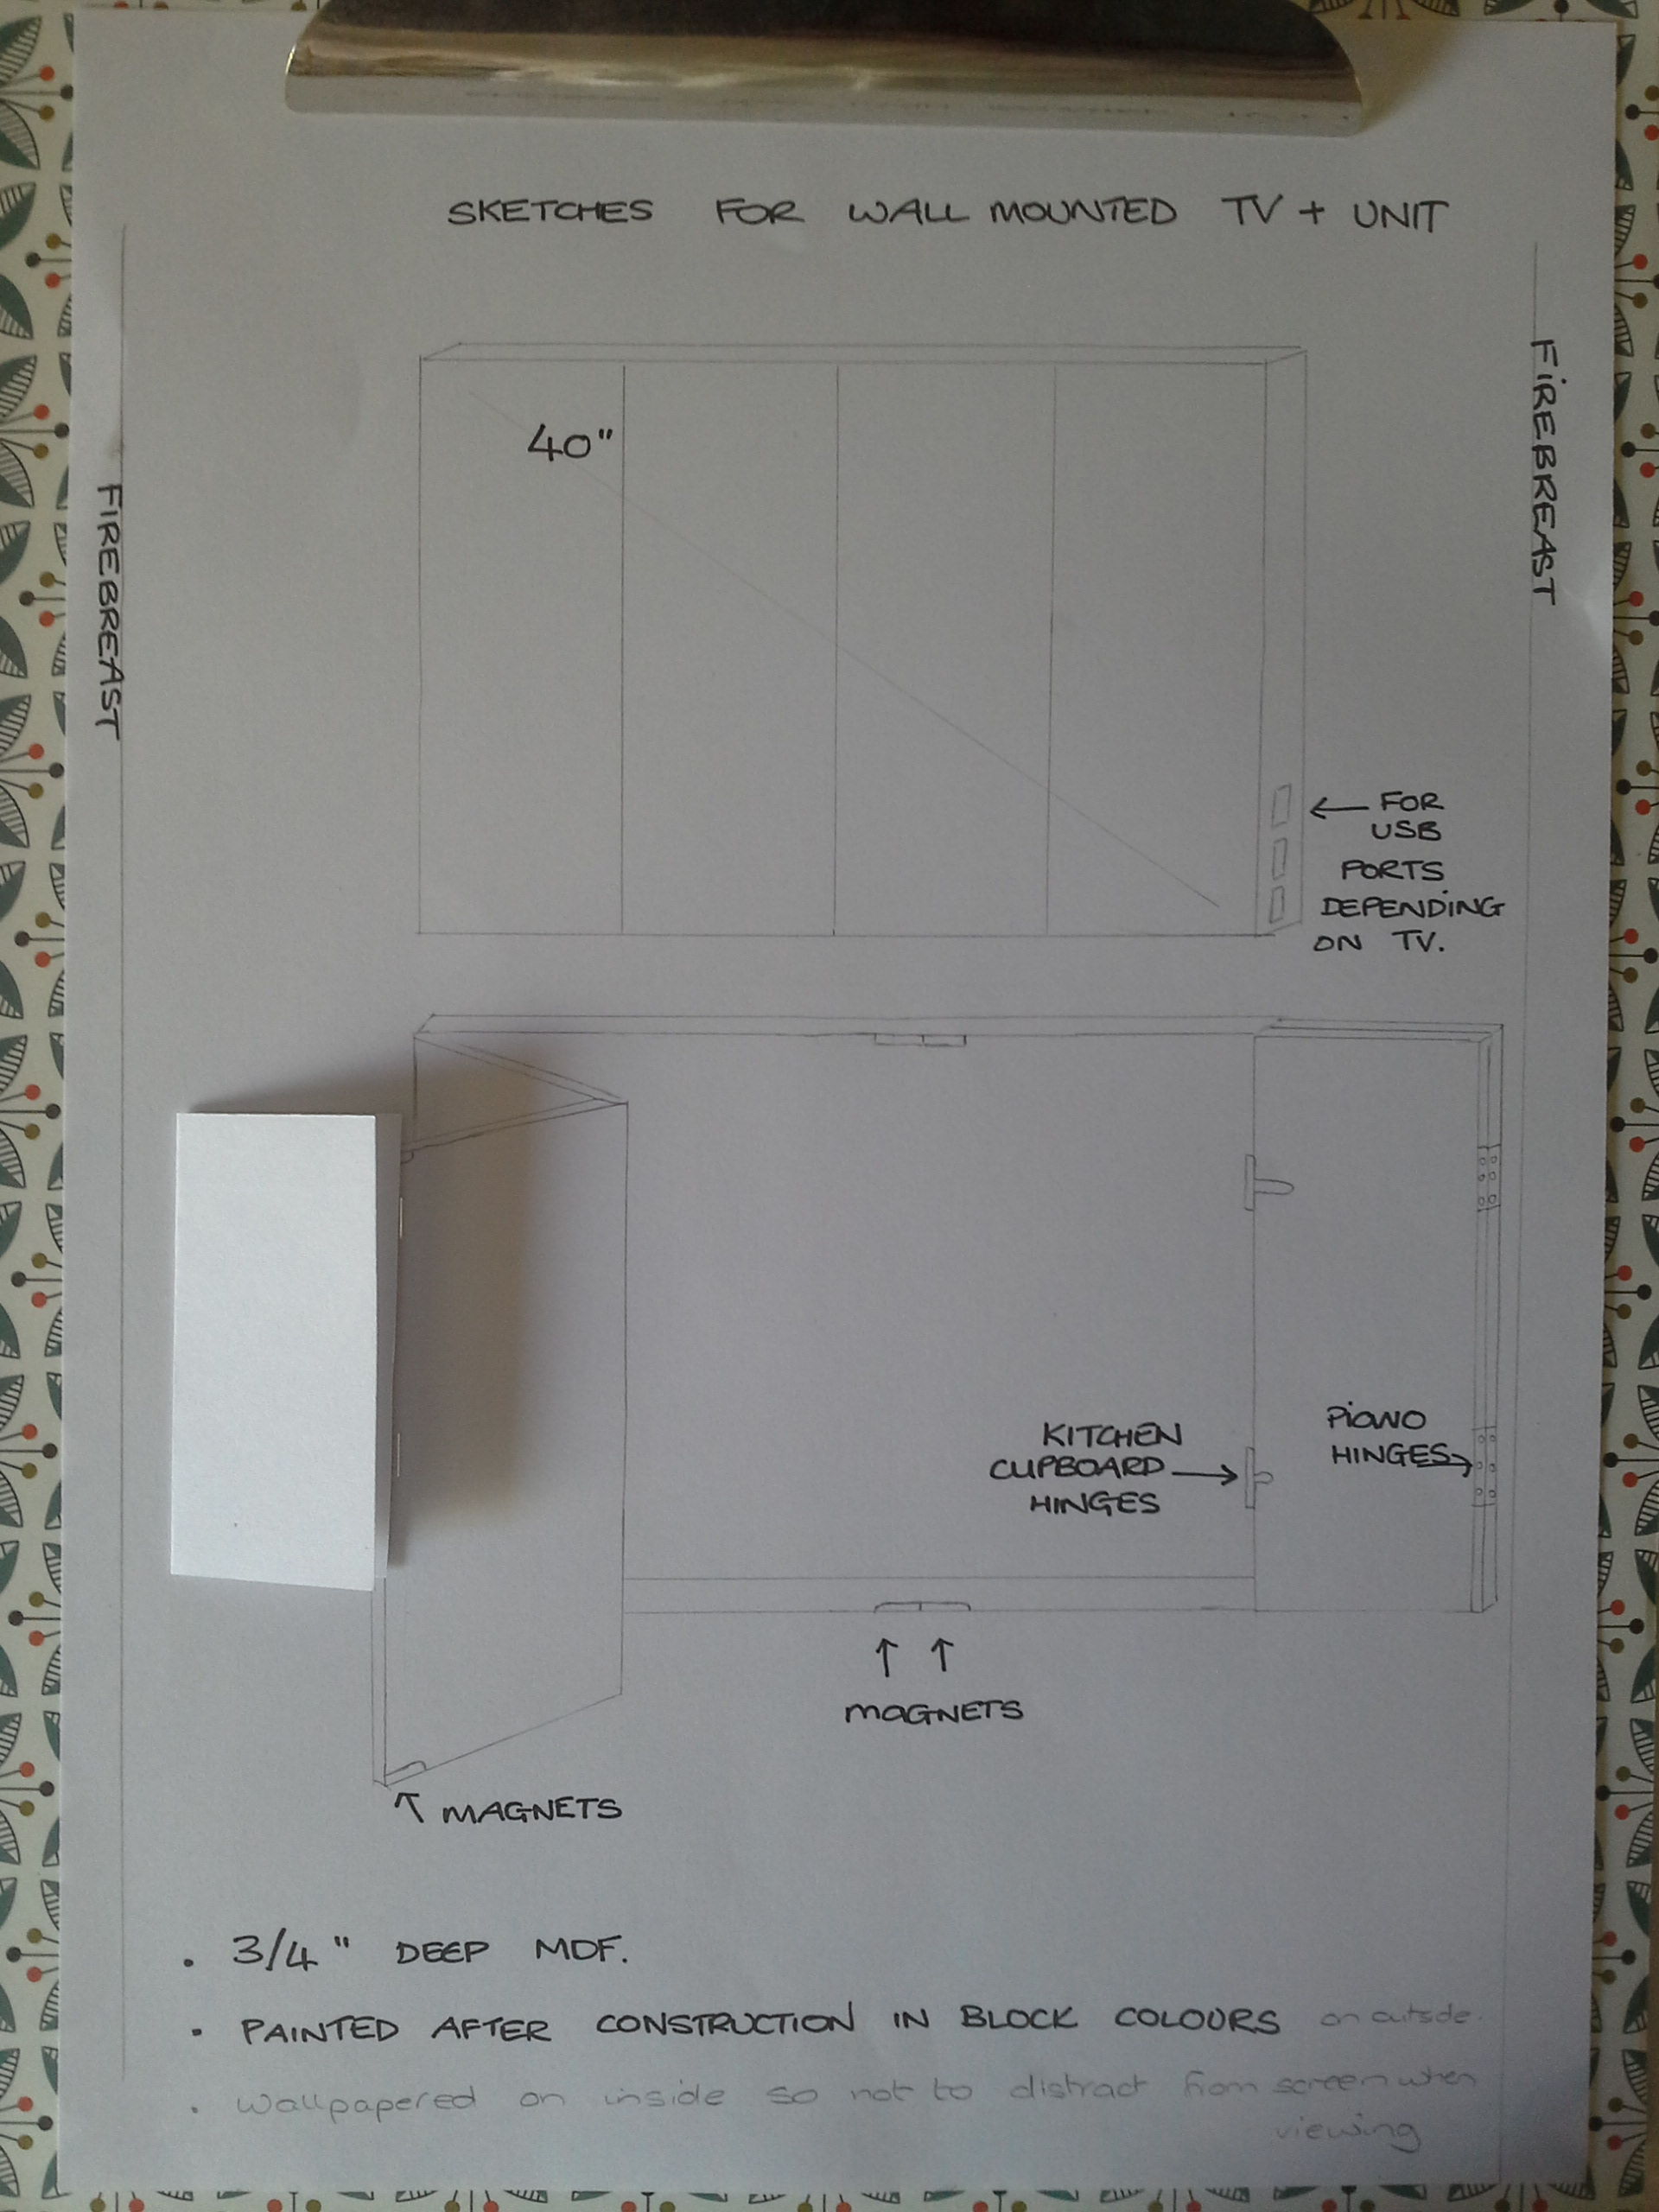 Working drawing for TV unit